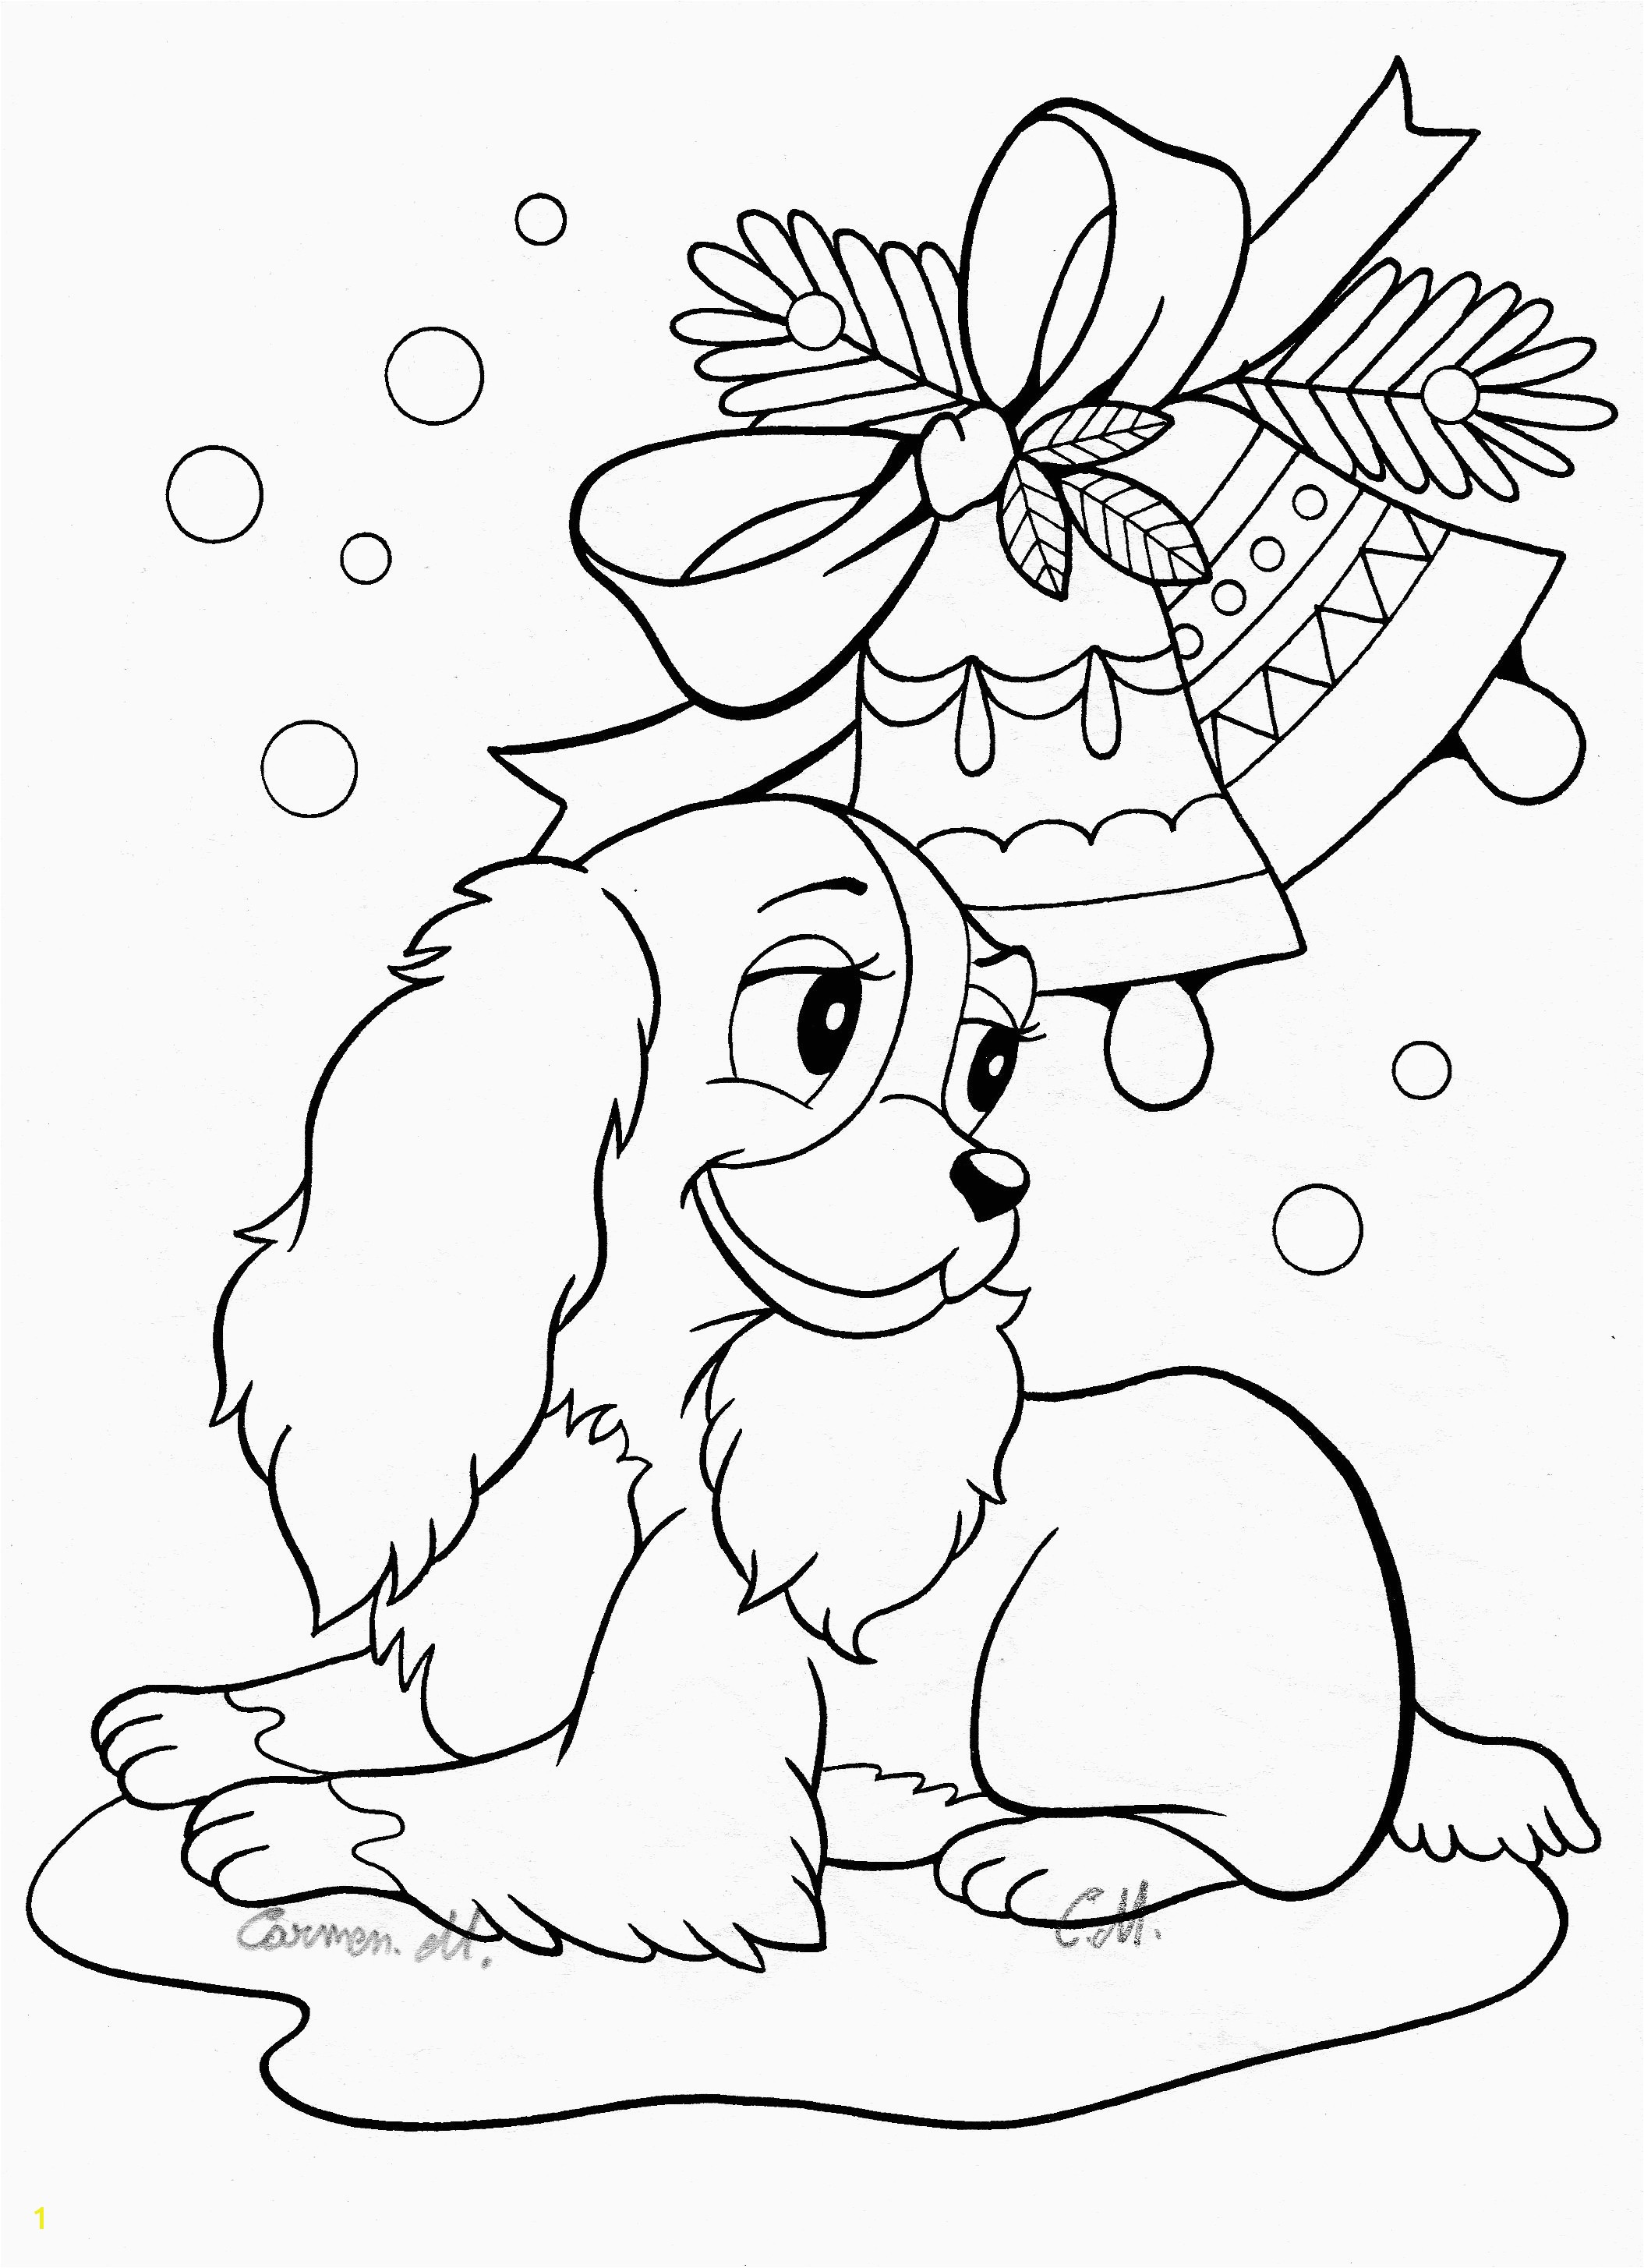 Coloring Pages toddlers Printables Awesome Fresh Coloring Pages Cute Animals Unique Printable Od Dog Coloring